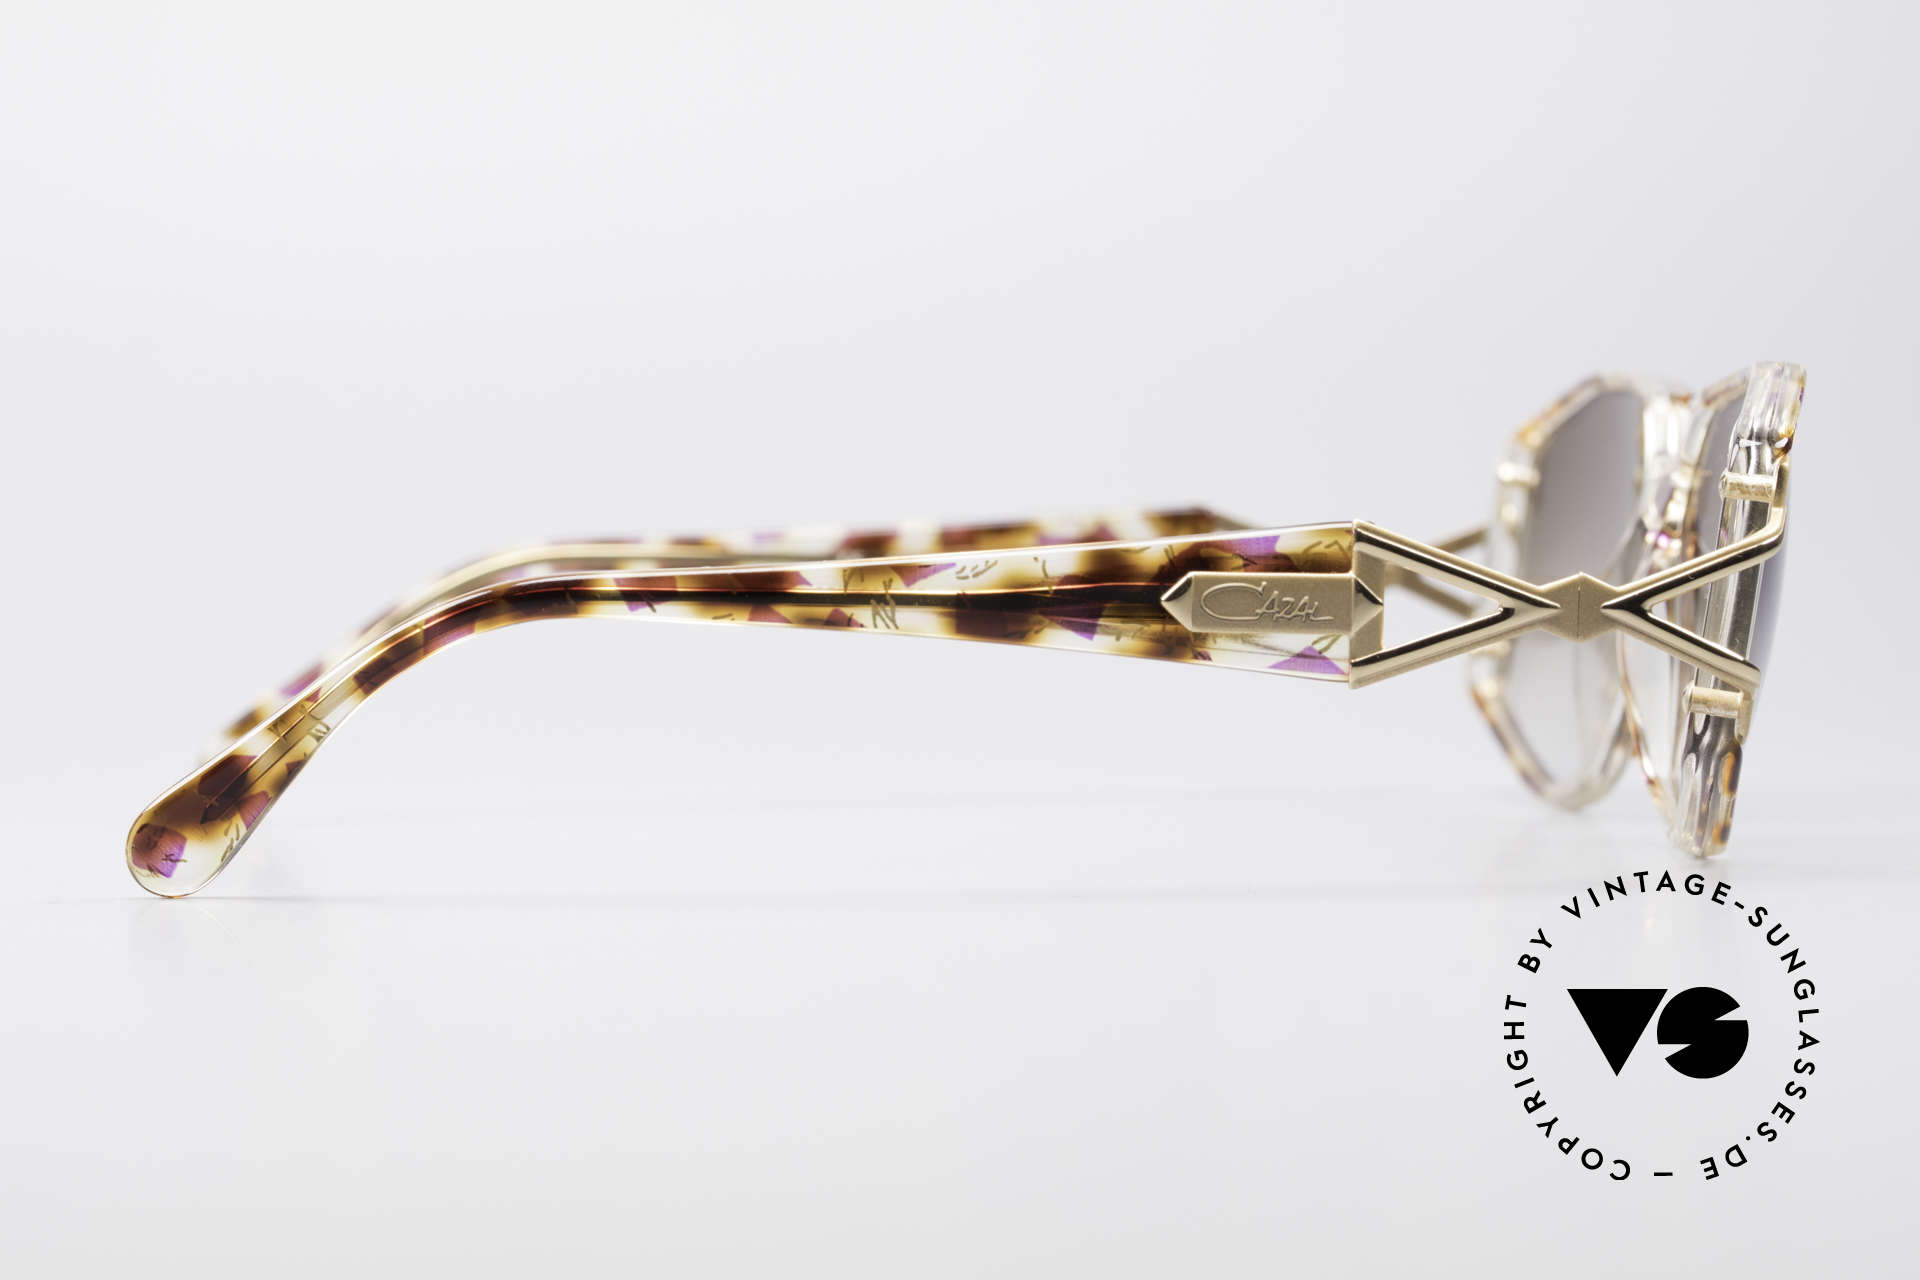 Cazal 368 Designer Shades Hip Hop Style, NO RETRO specs, but a 25 years old original by CAZAL!, Made for Women